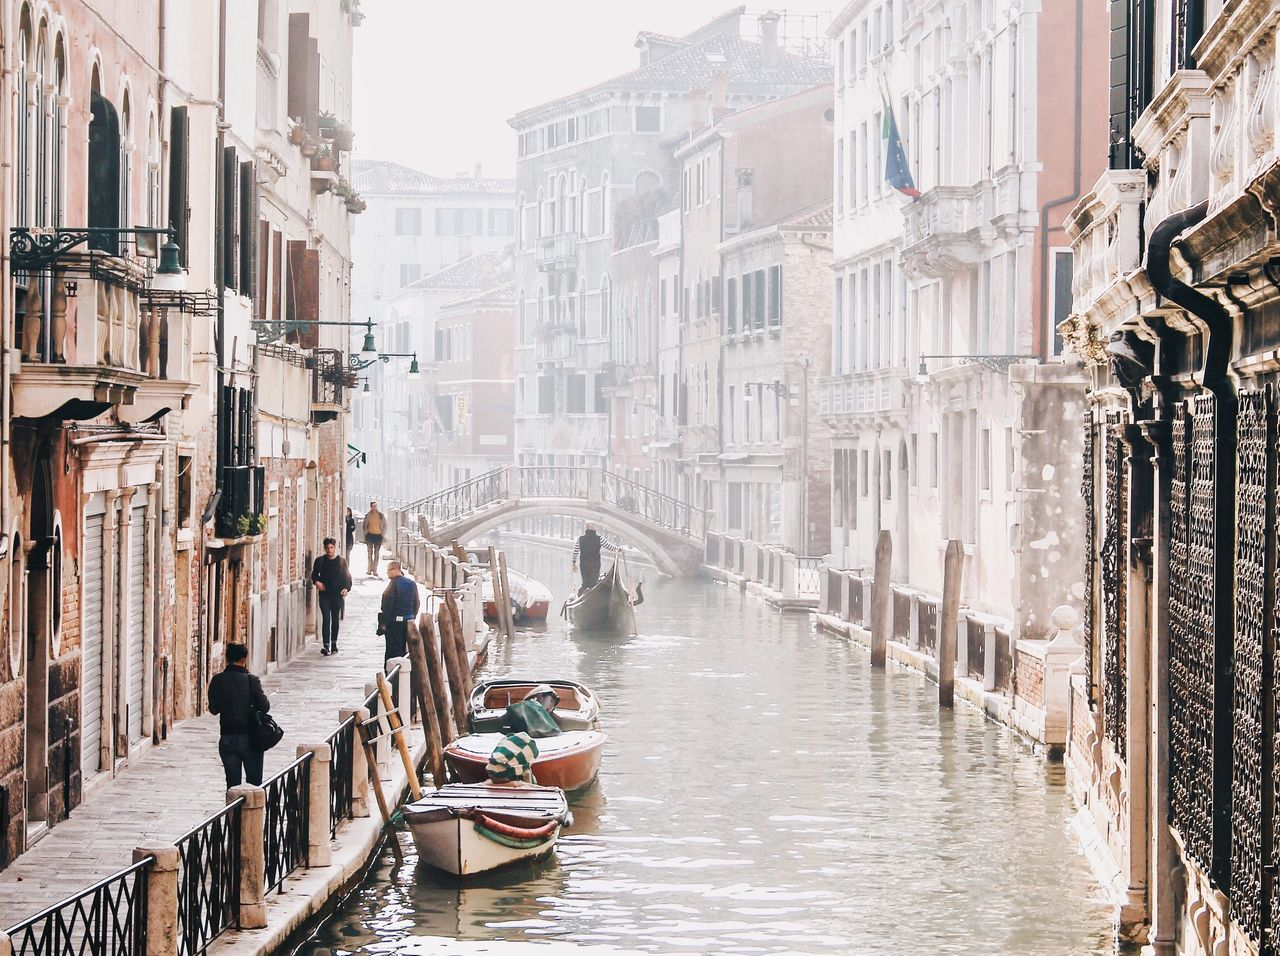 Venice, Italy Venice Canals Venicelife Cultures Gondolier Transportation City Outdoors People